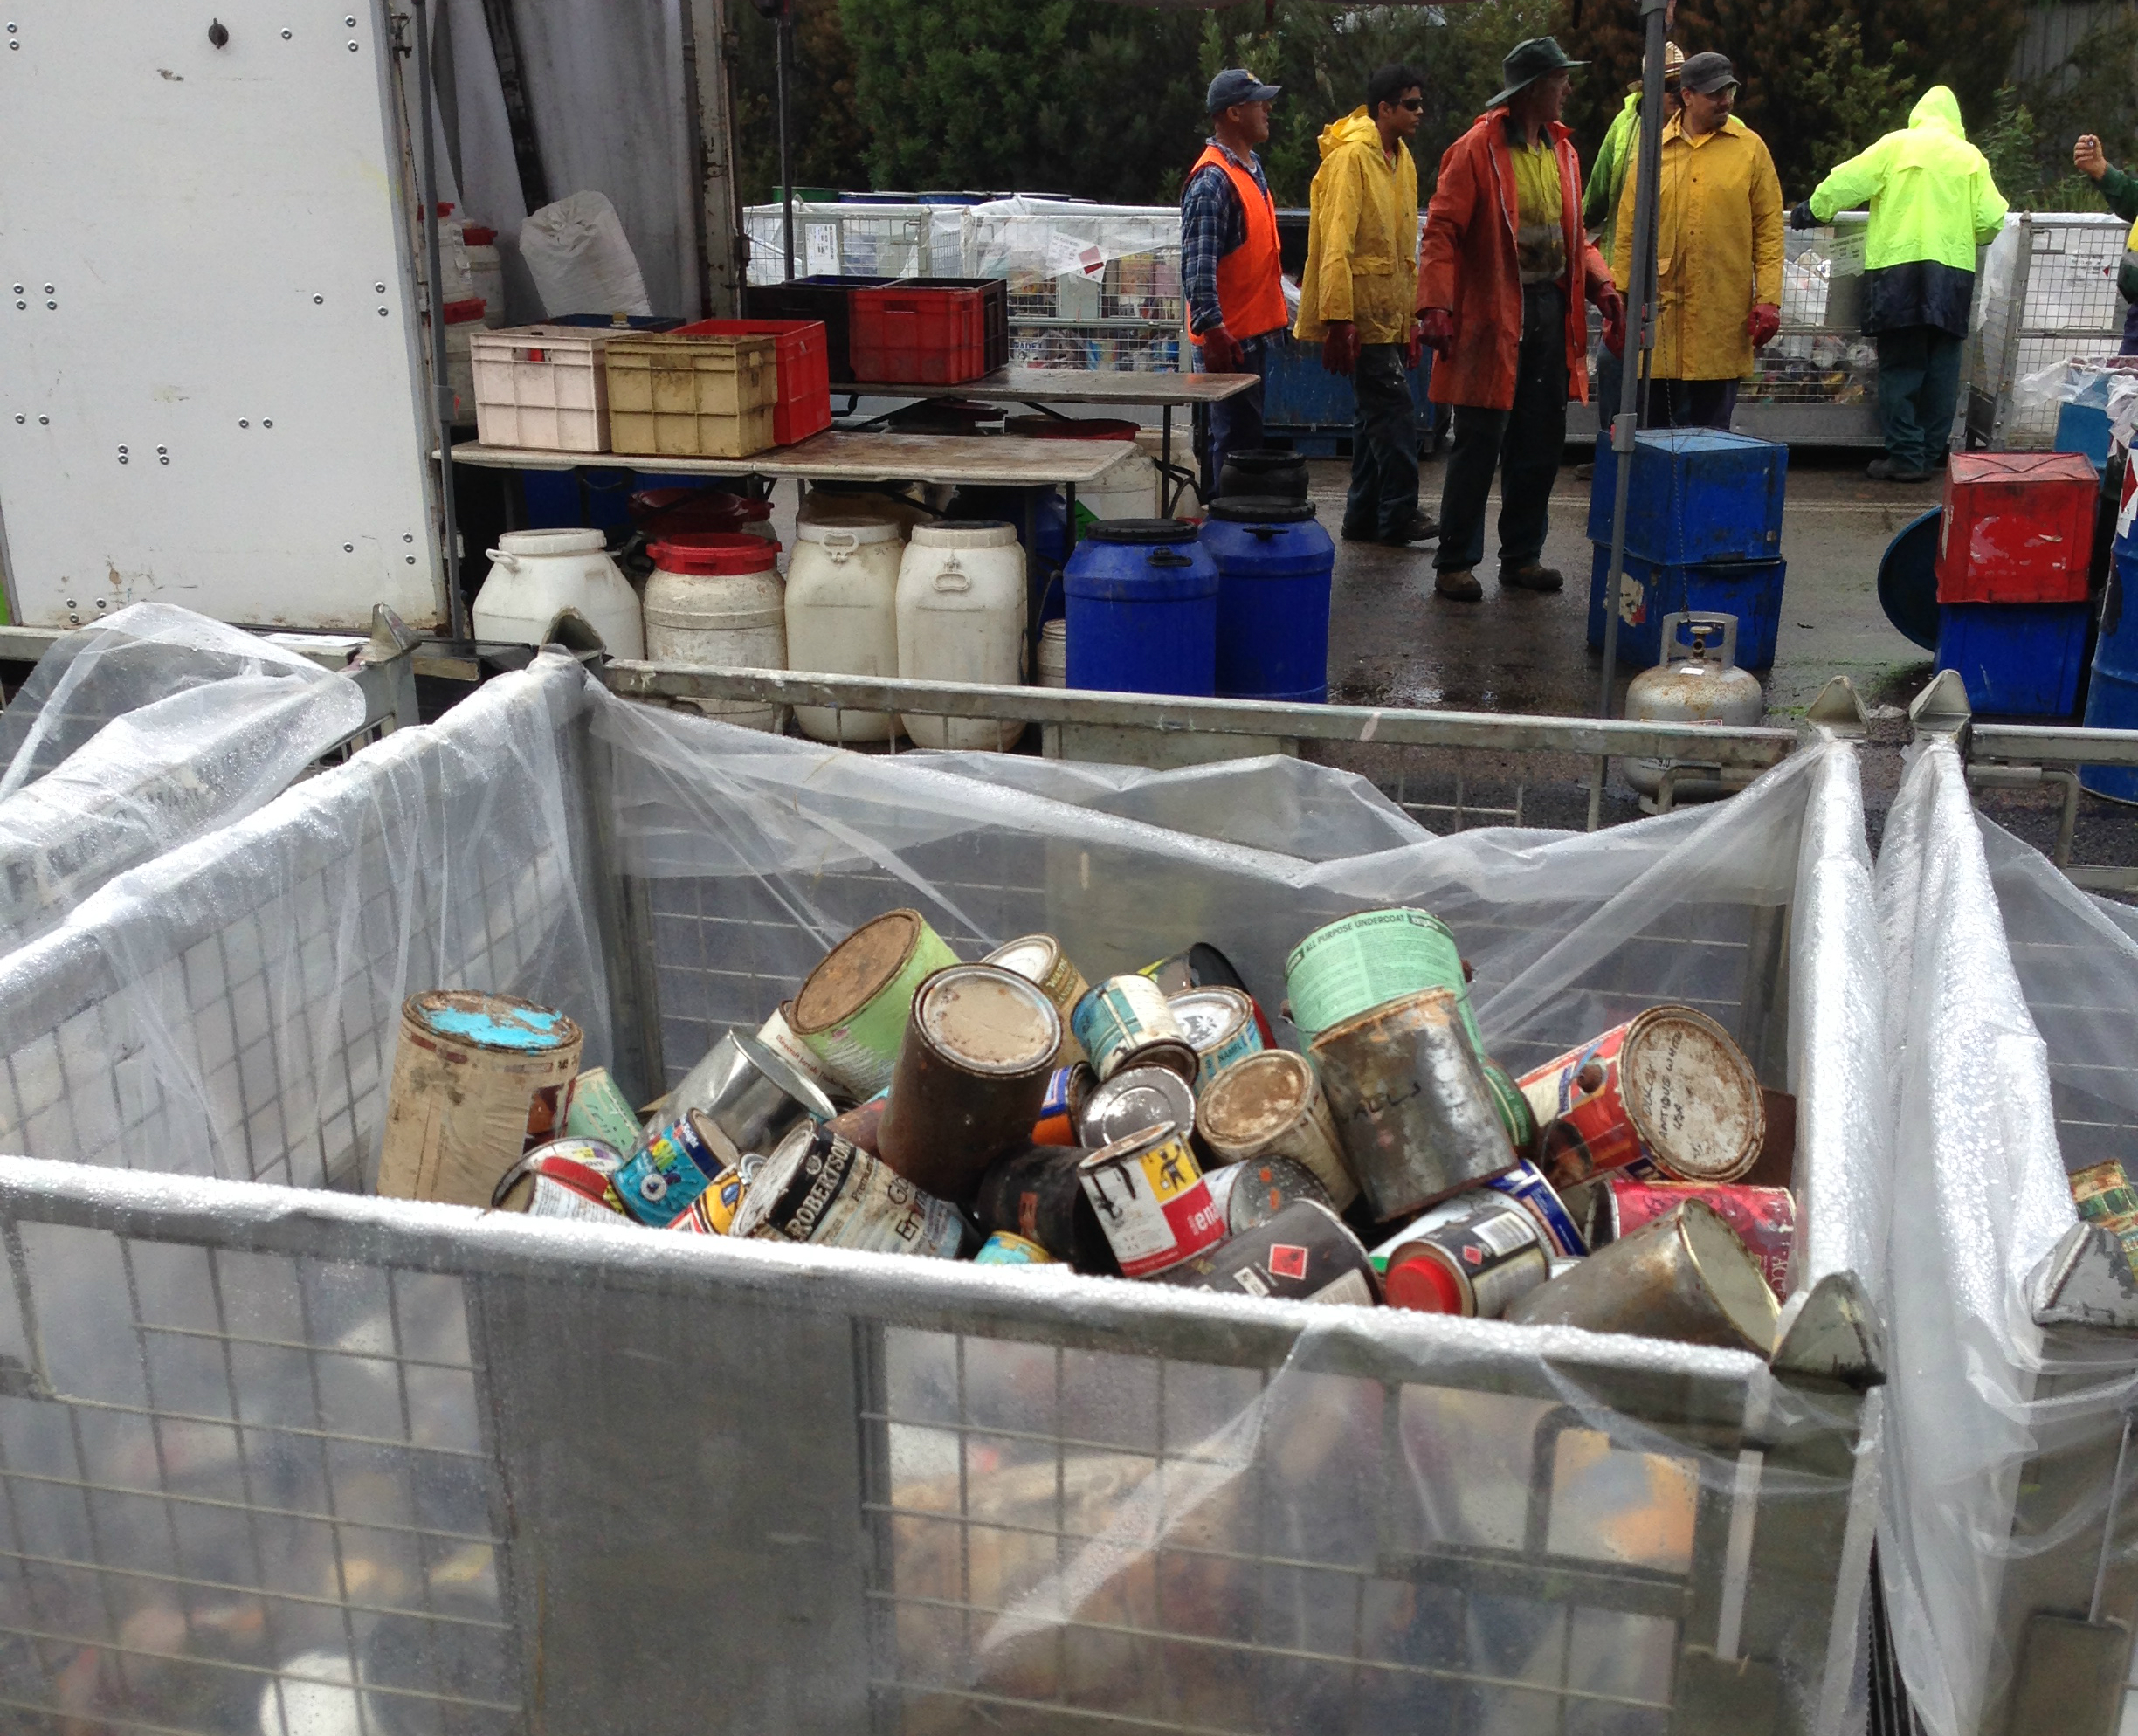 chemical cleanout 2014